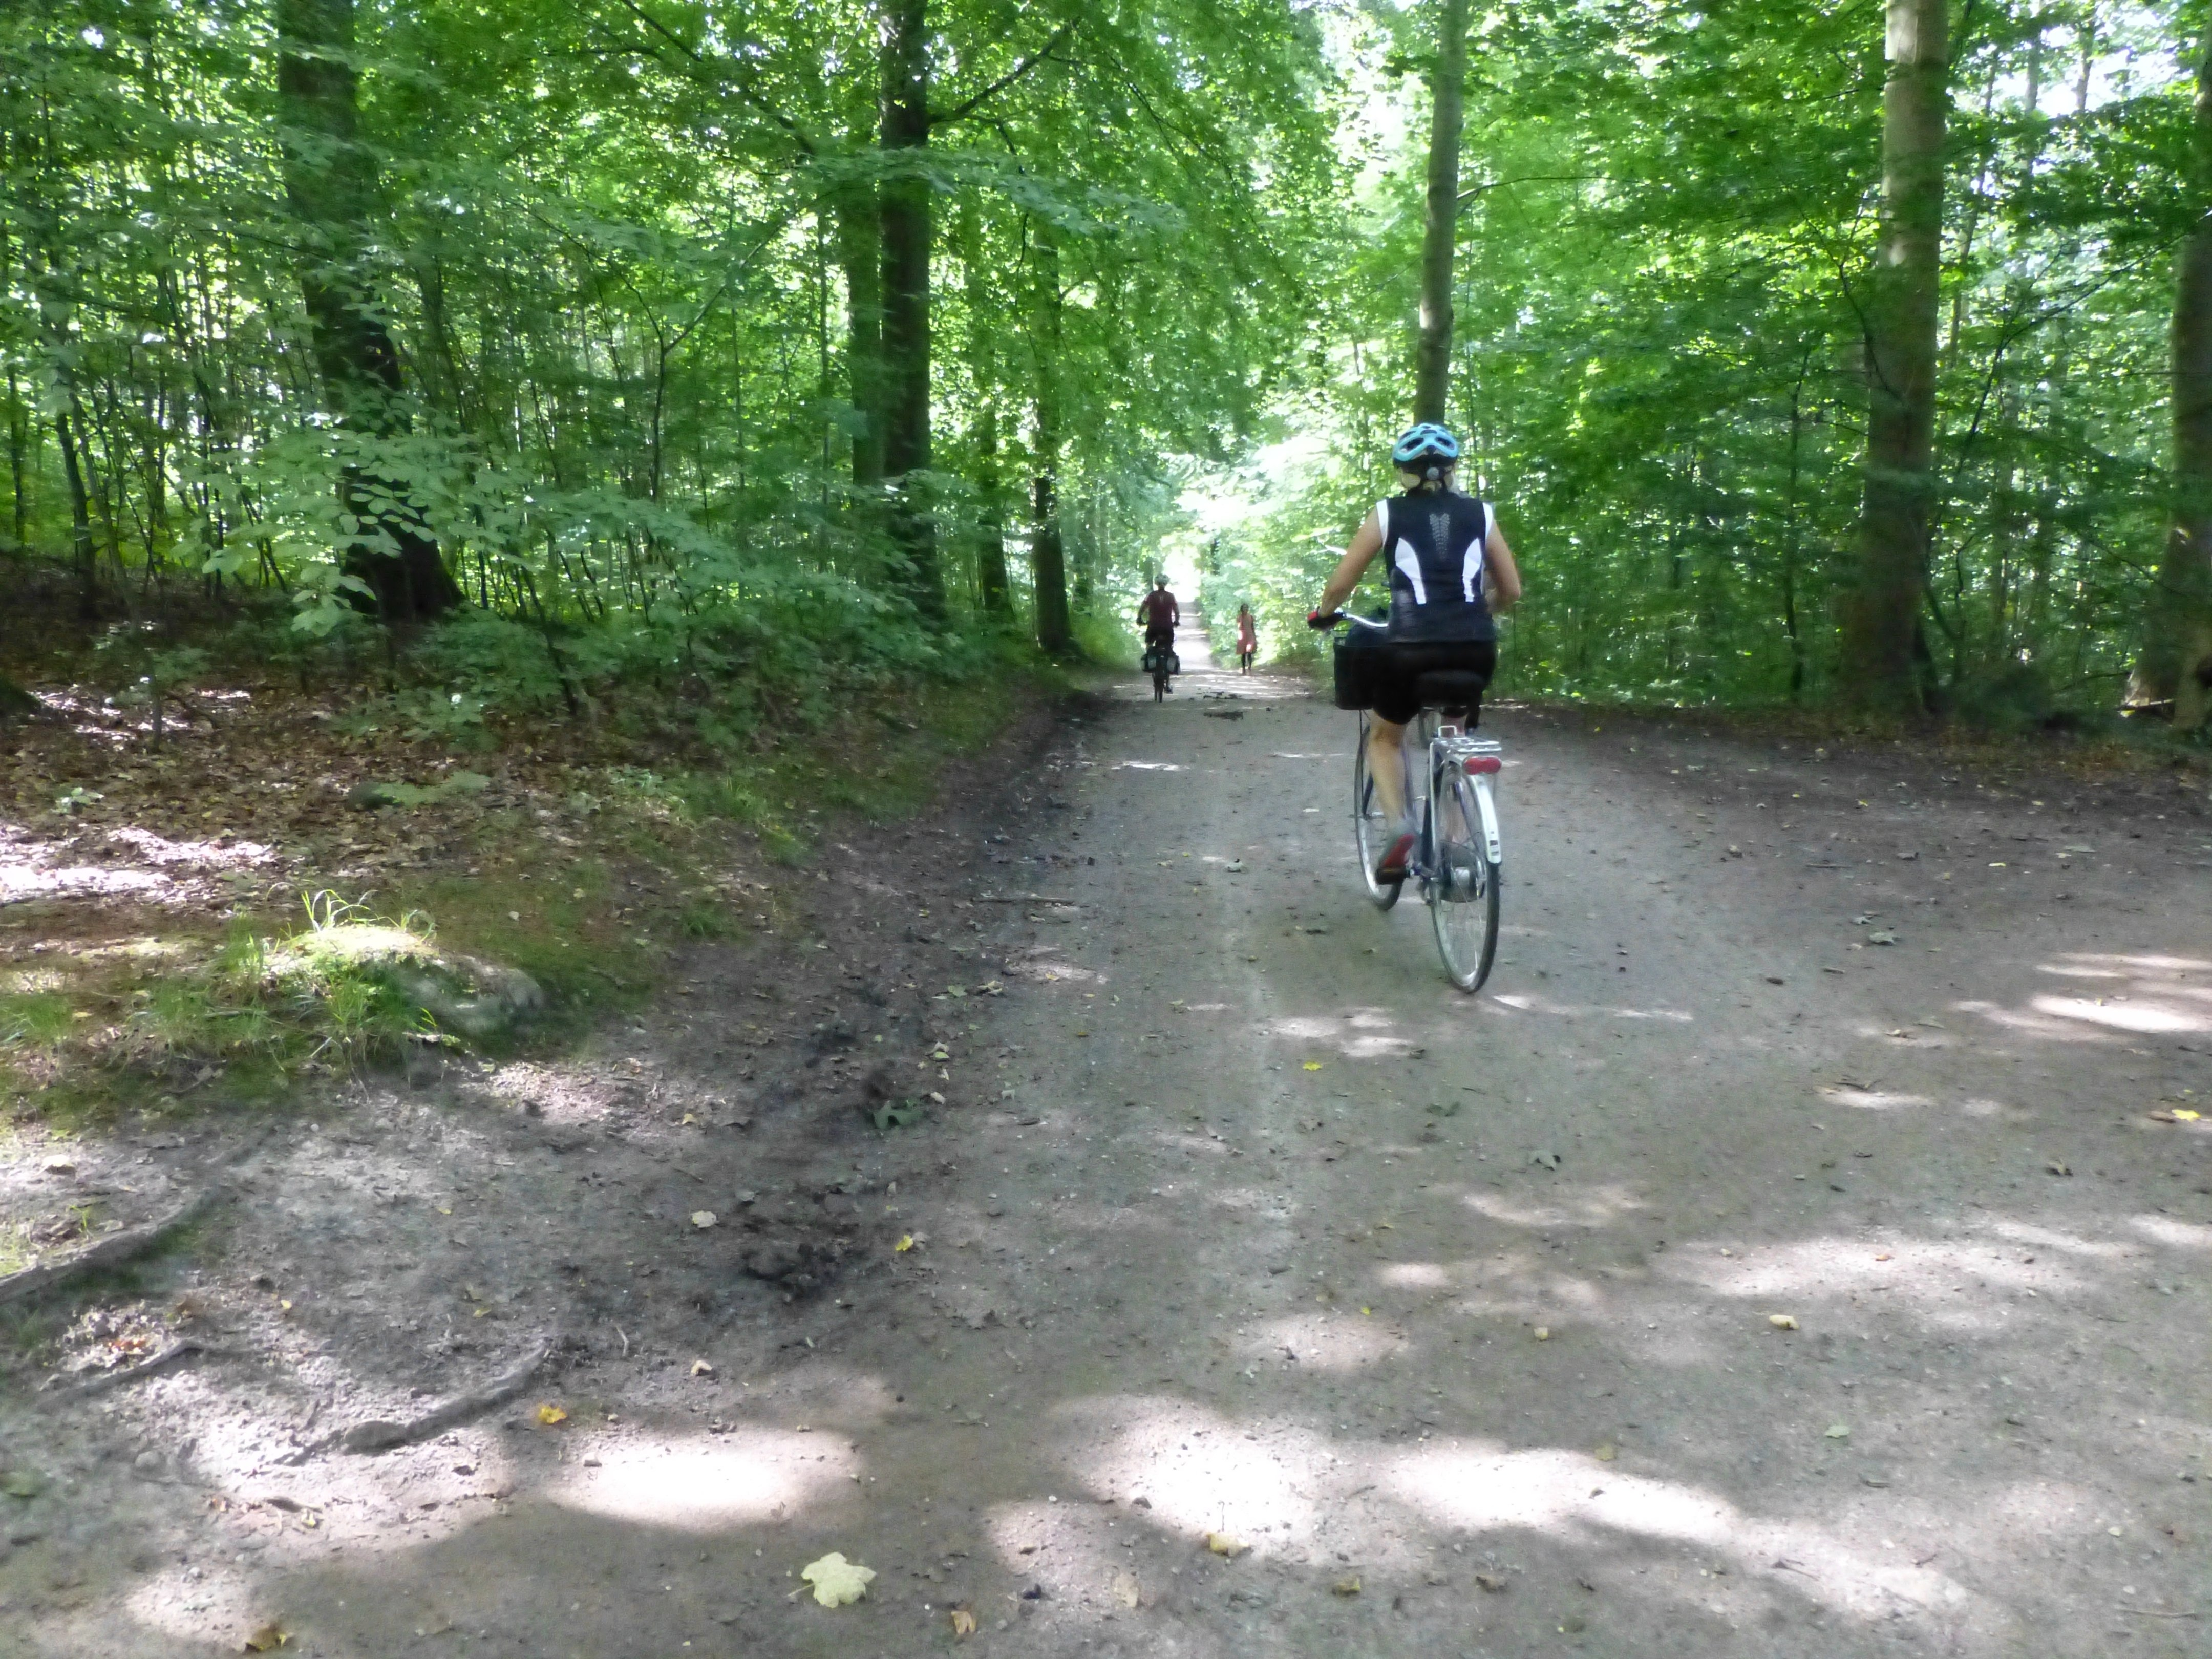 Family cycling holidays island of Møn. Ride forest trails.